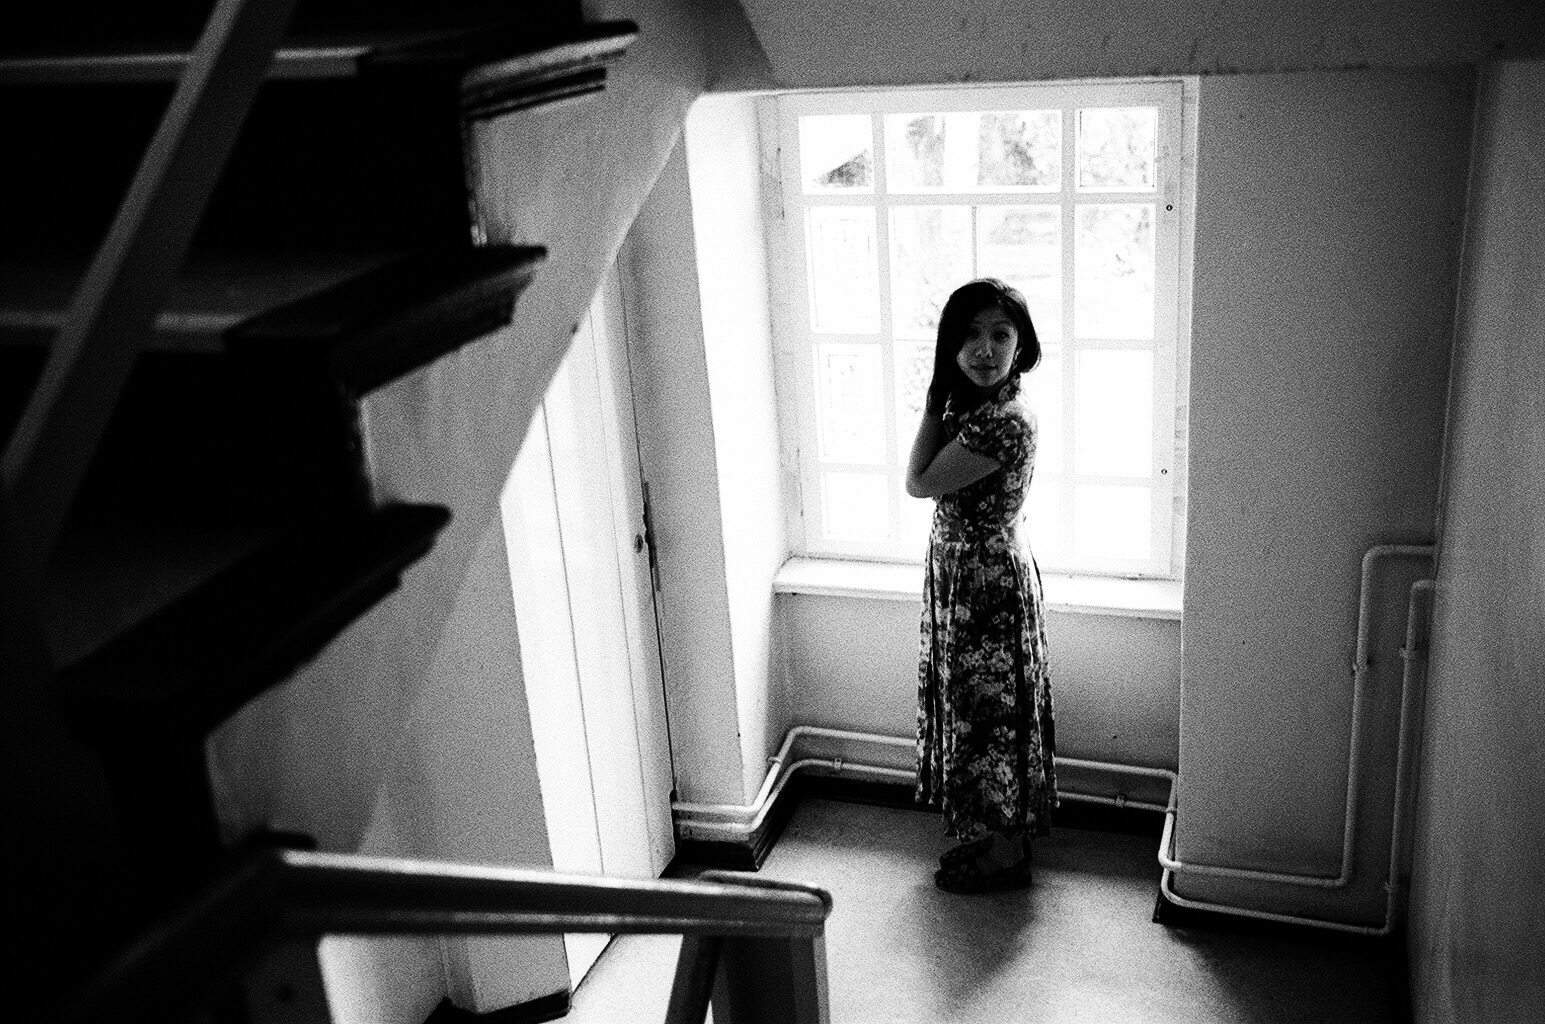 eric kim photography cindy project film 1600 trix kodak